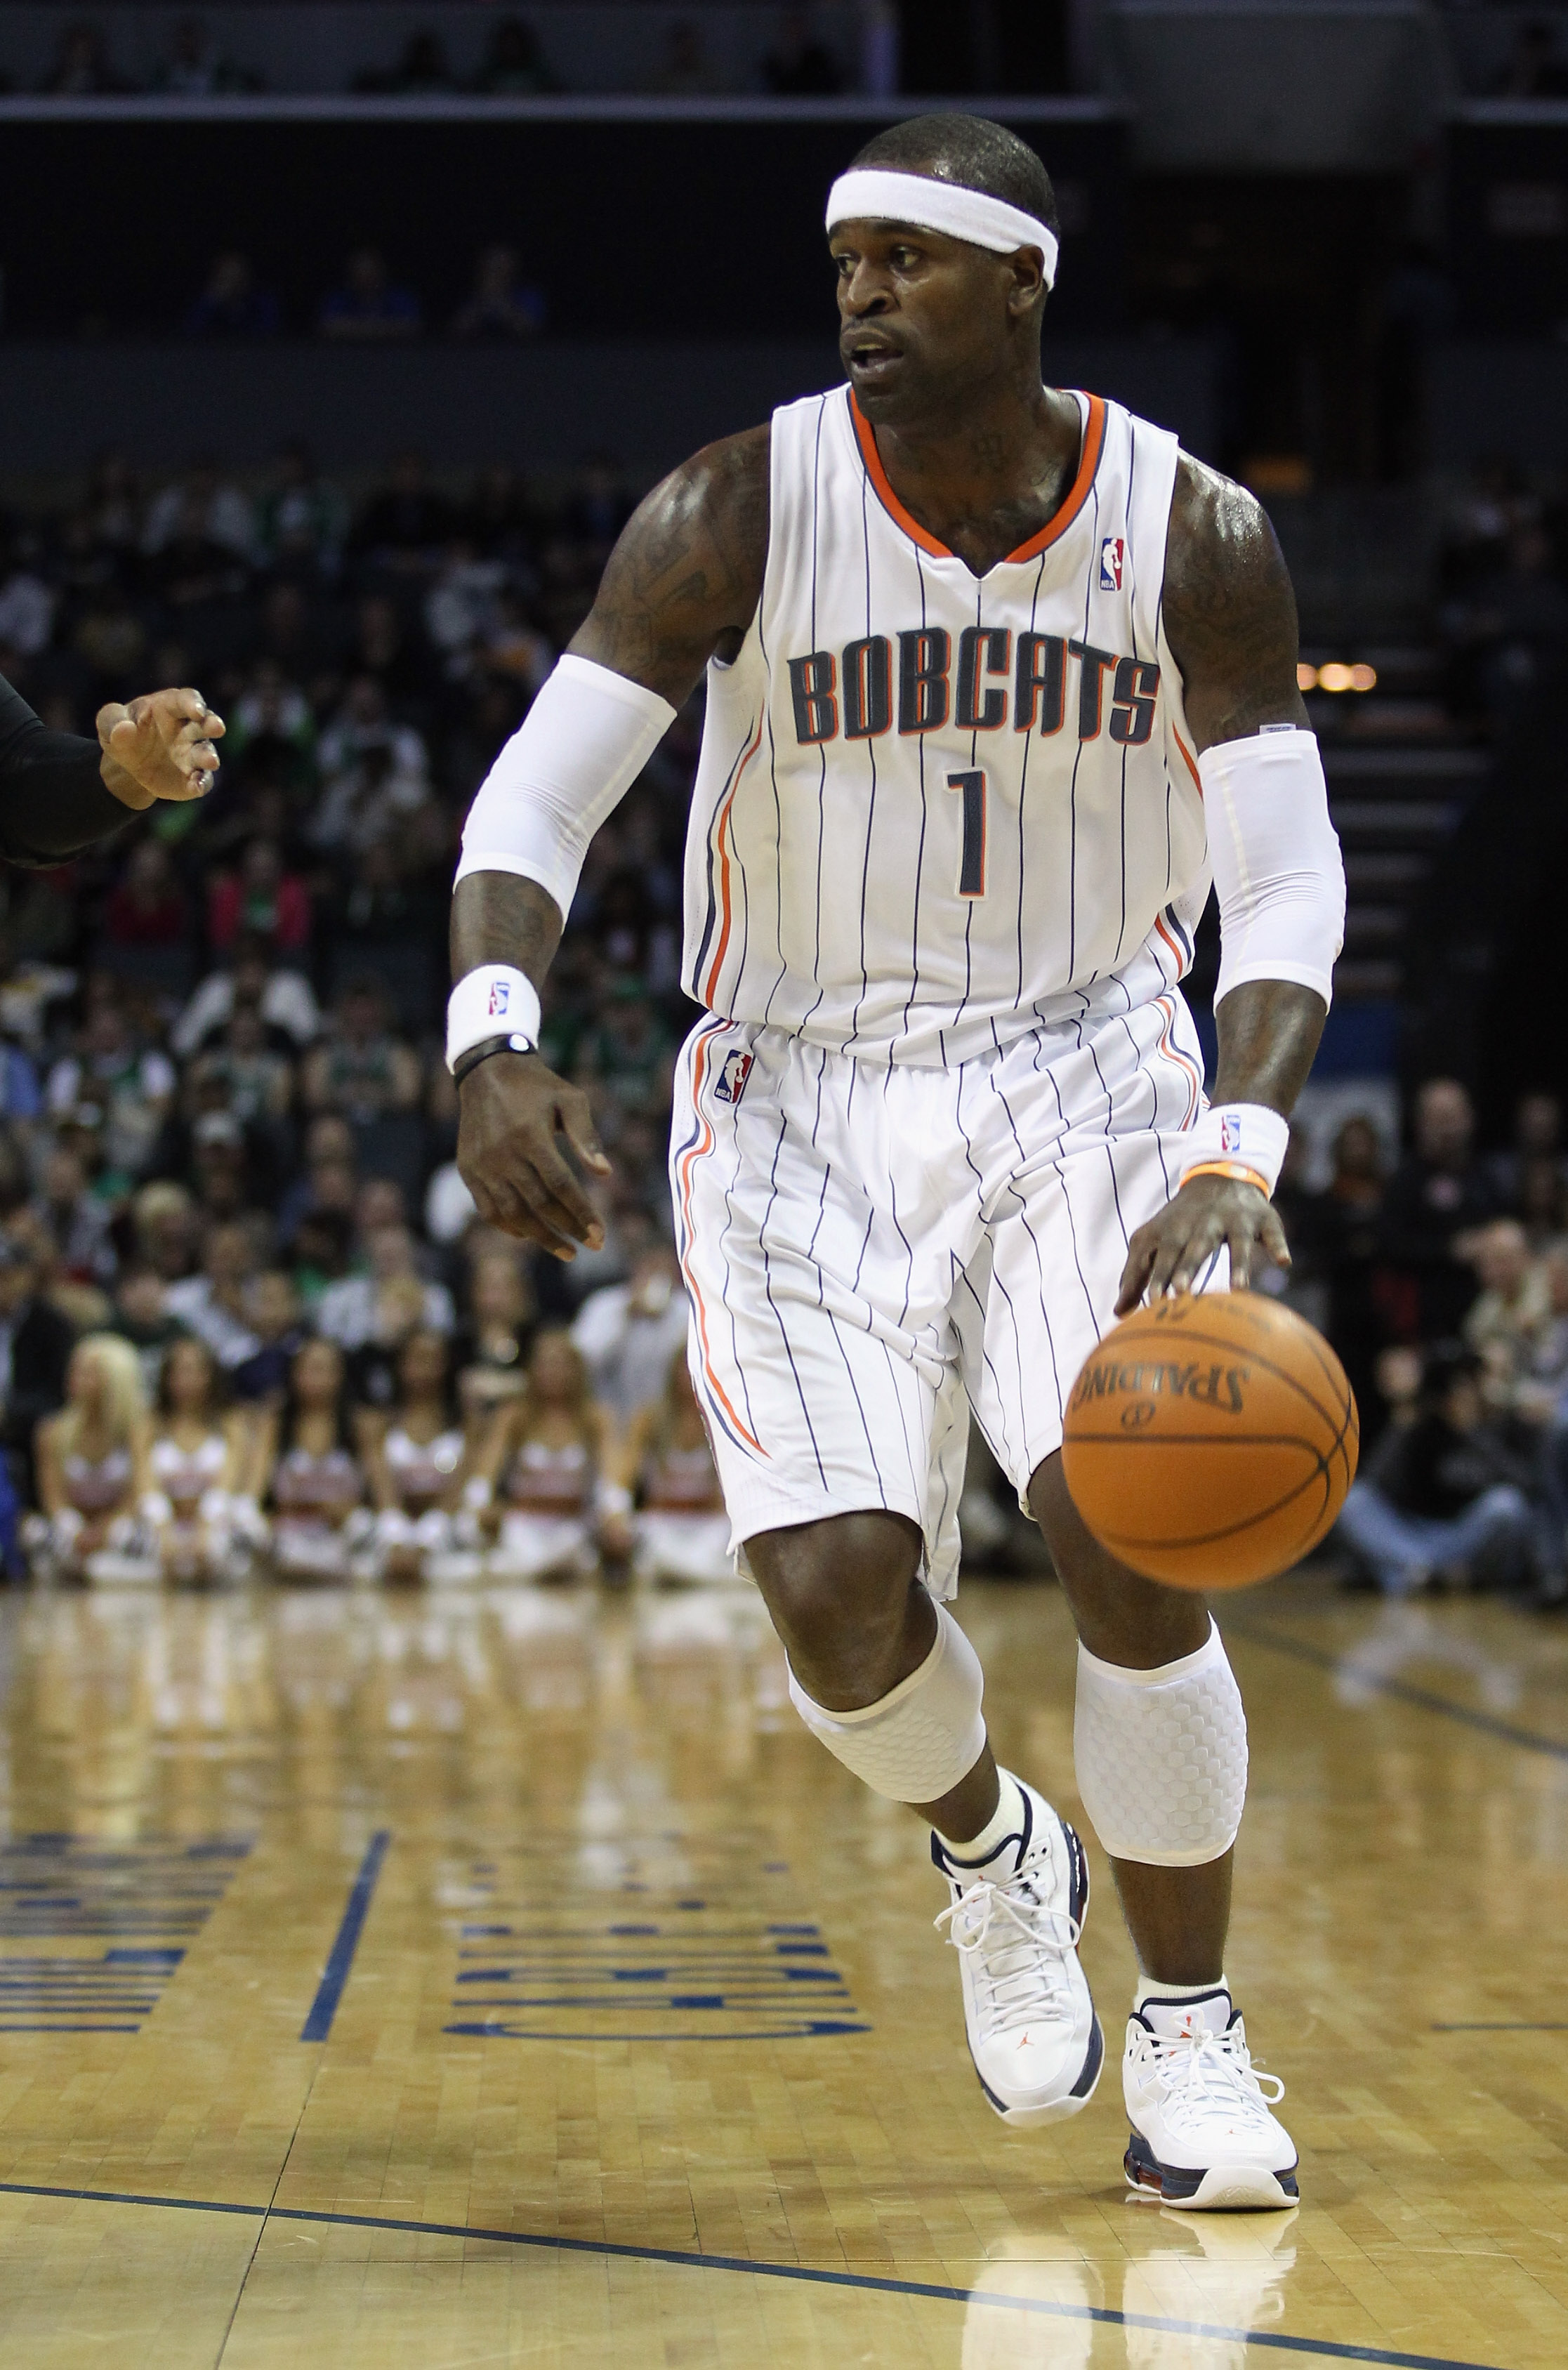 CHARLOTTE, NC - DECEMBER 11: Stephen Jackson #1 of the Charlotte Bobcats against the Boston Celtics during their game at Time Warner Cable Arena on December 11, 2010 in Charlotte, North Carolina. NOTE TO USER: User expressly acknowledges and agrees that,